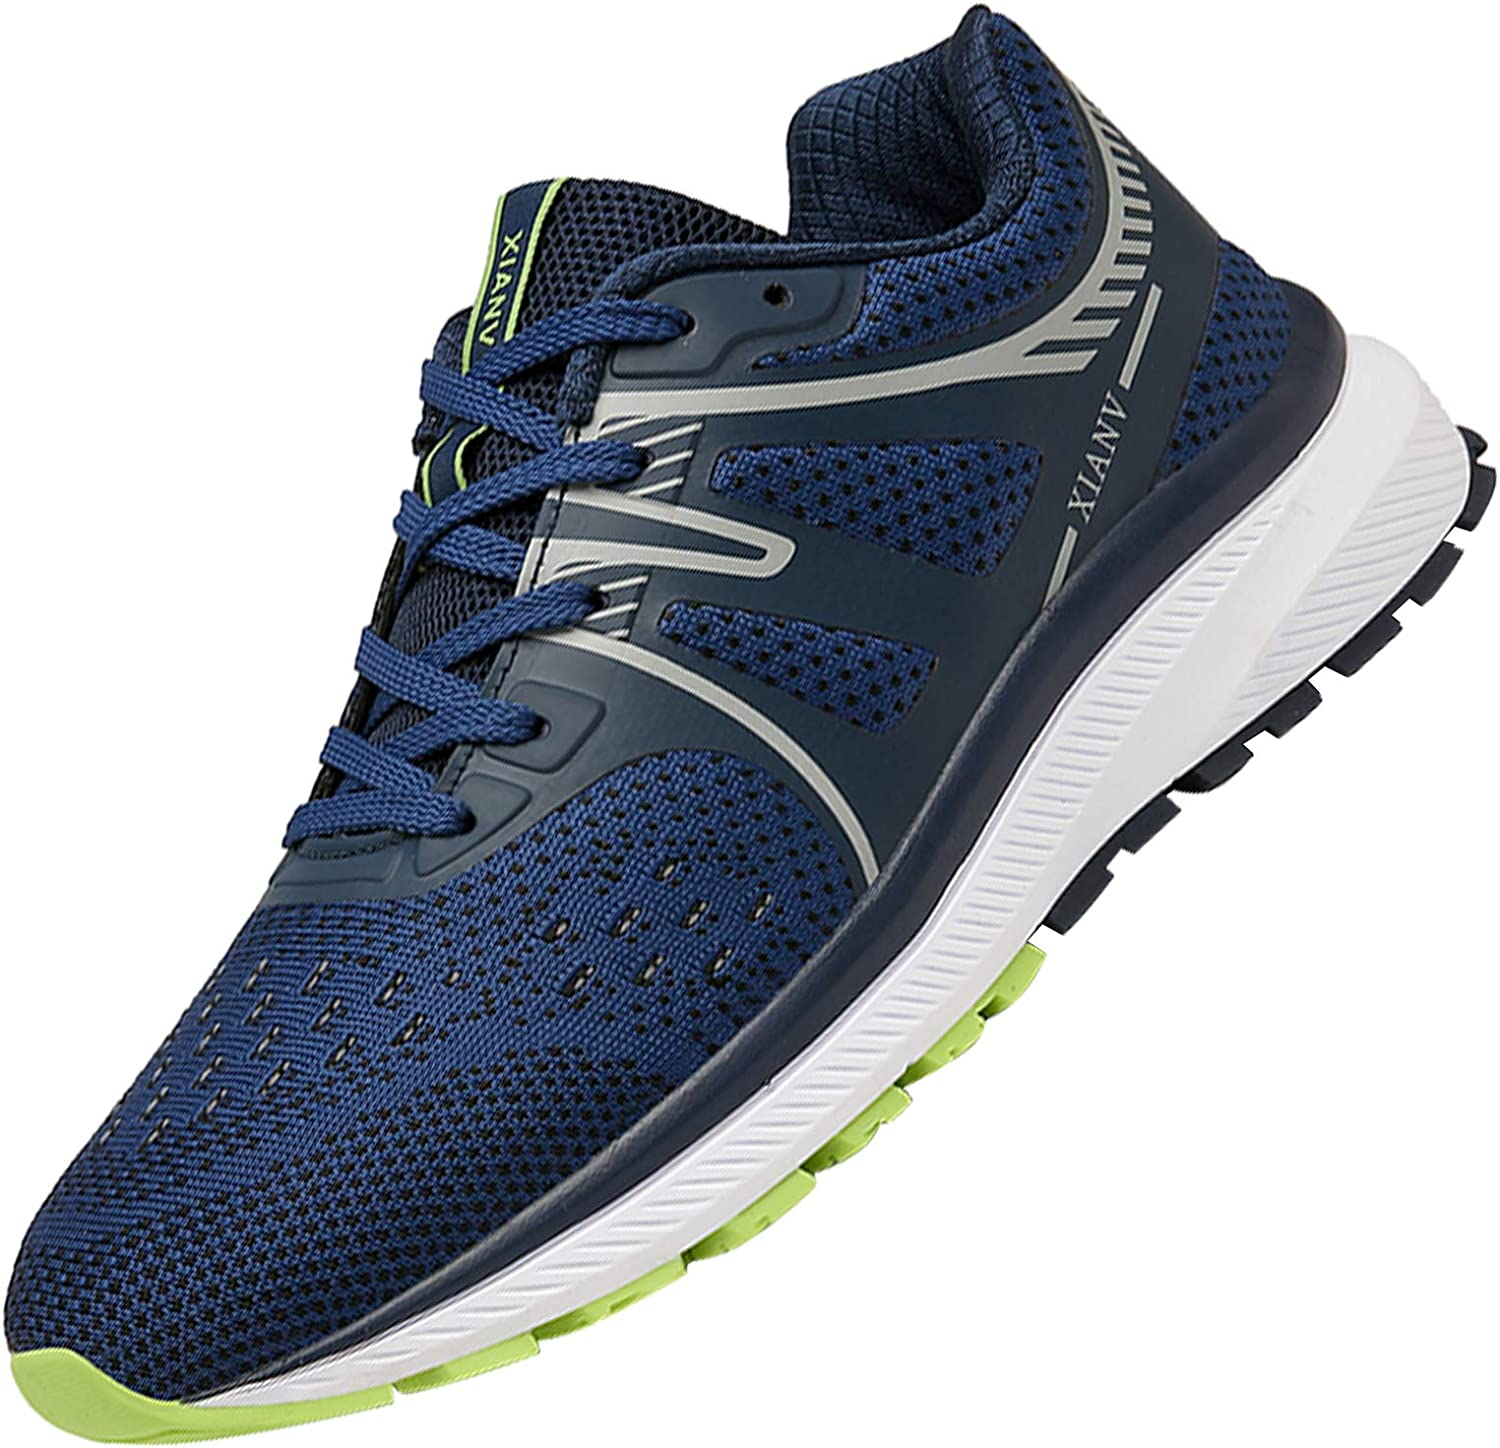 DUORO Walking Shoes for Limited Special Price Men Breathable Lightweight Fees free Shoe Running